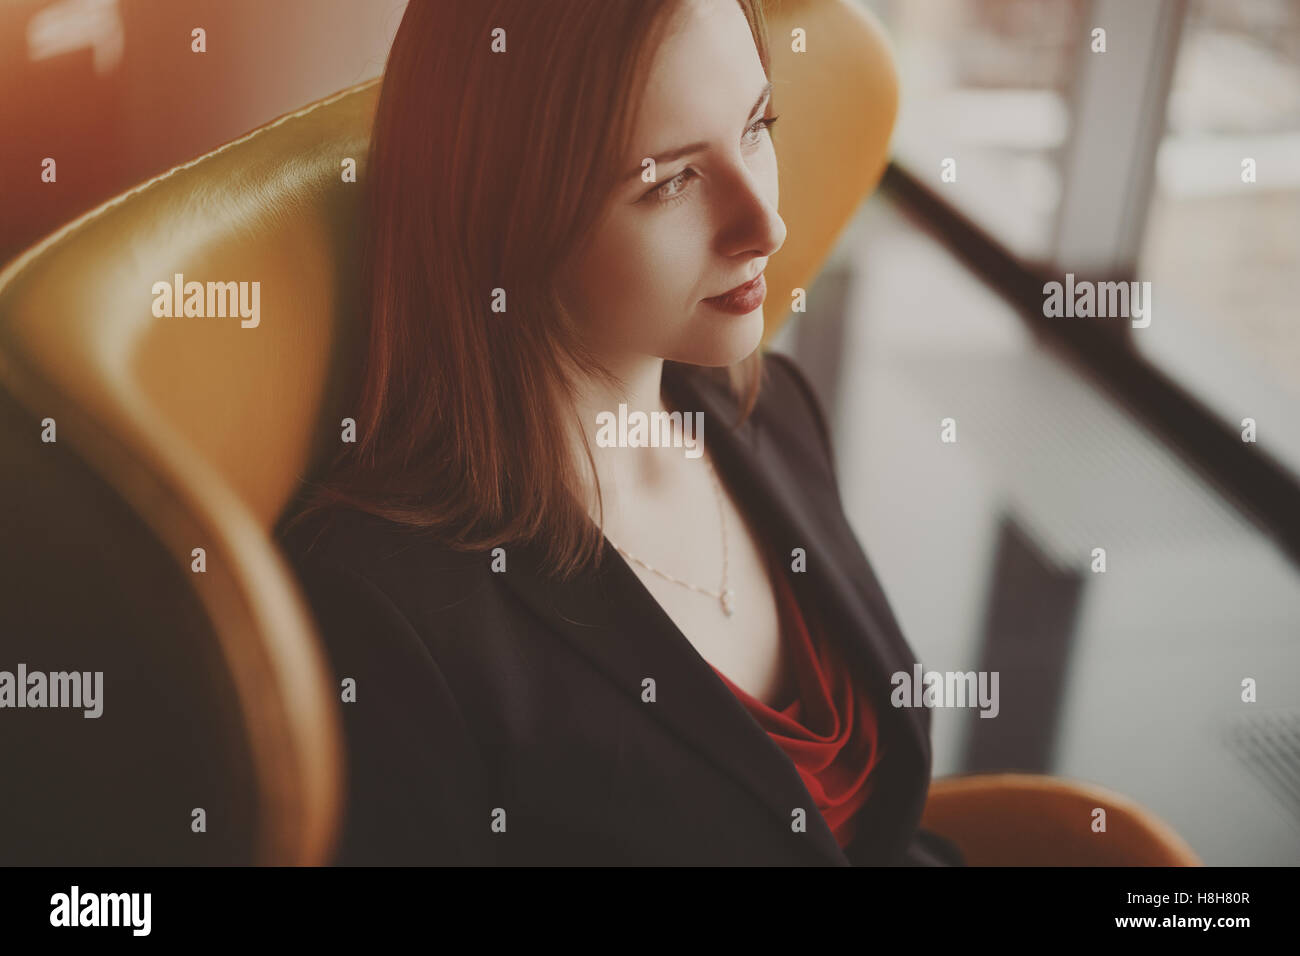 Portrait of young successful woman entrepreneur in a red dress and jacket sitting on orange armchair near window - Stock Image